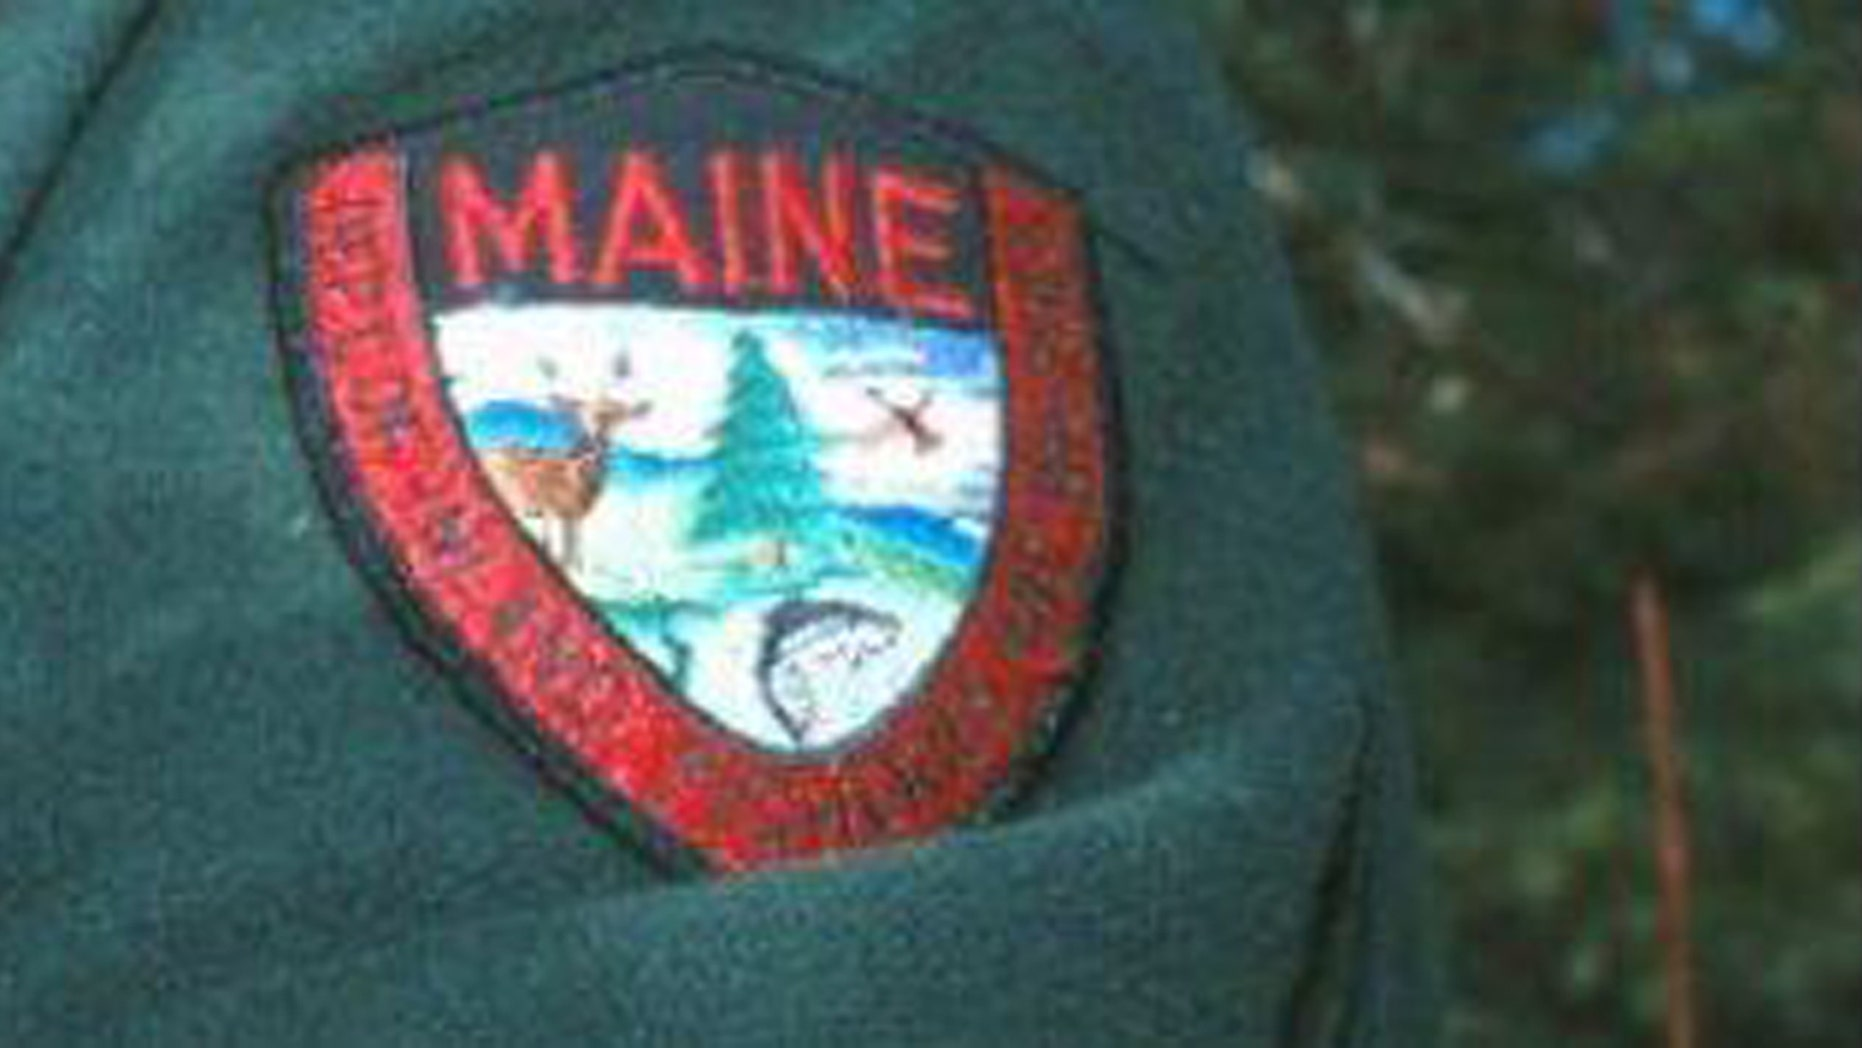 A man who meant to shoot a turkey accidentally hit a passer-by in the chest on Monday morning, the Maine Warden Service said.